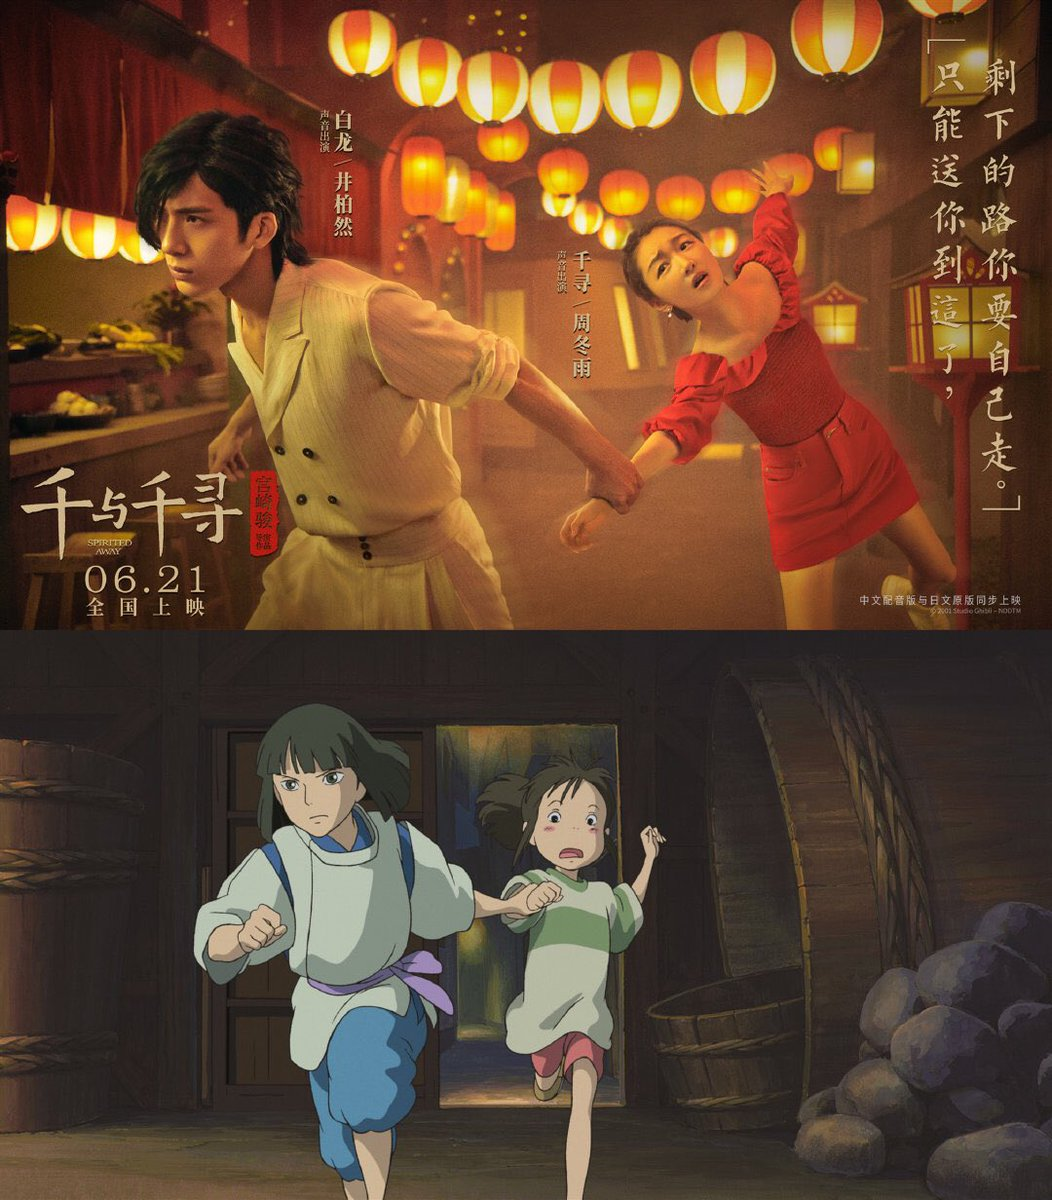 Cdrama Tweets On Twitter Spiritedaway Shares Comparison Photos For The Scenes They Recreated In The New Posters With Chinese Voice Cast Members Zhoudongyu Chihiro Jingboran Haku And Pengyuchang No Face The Animated Film